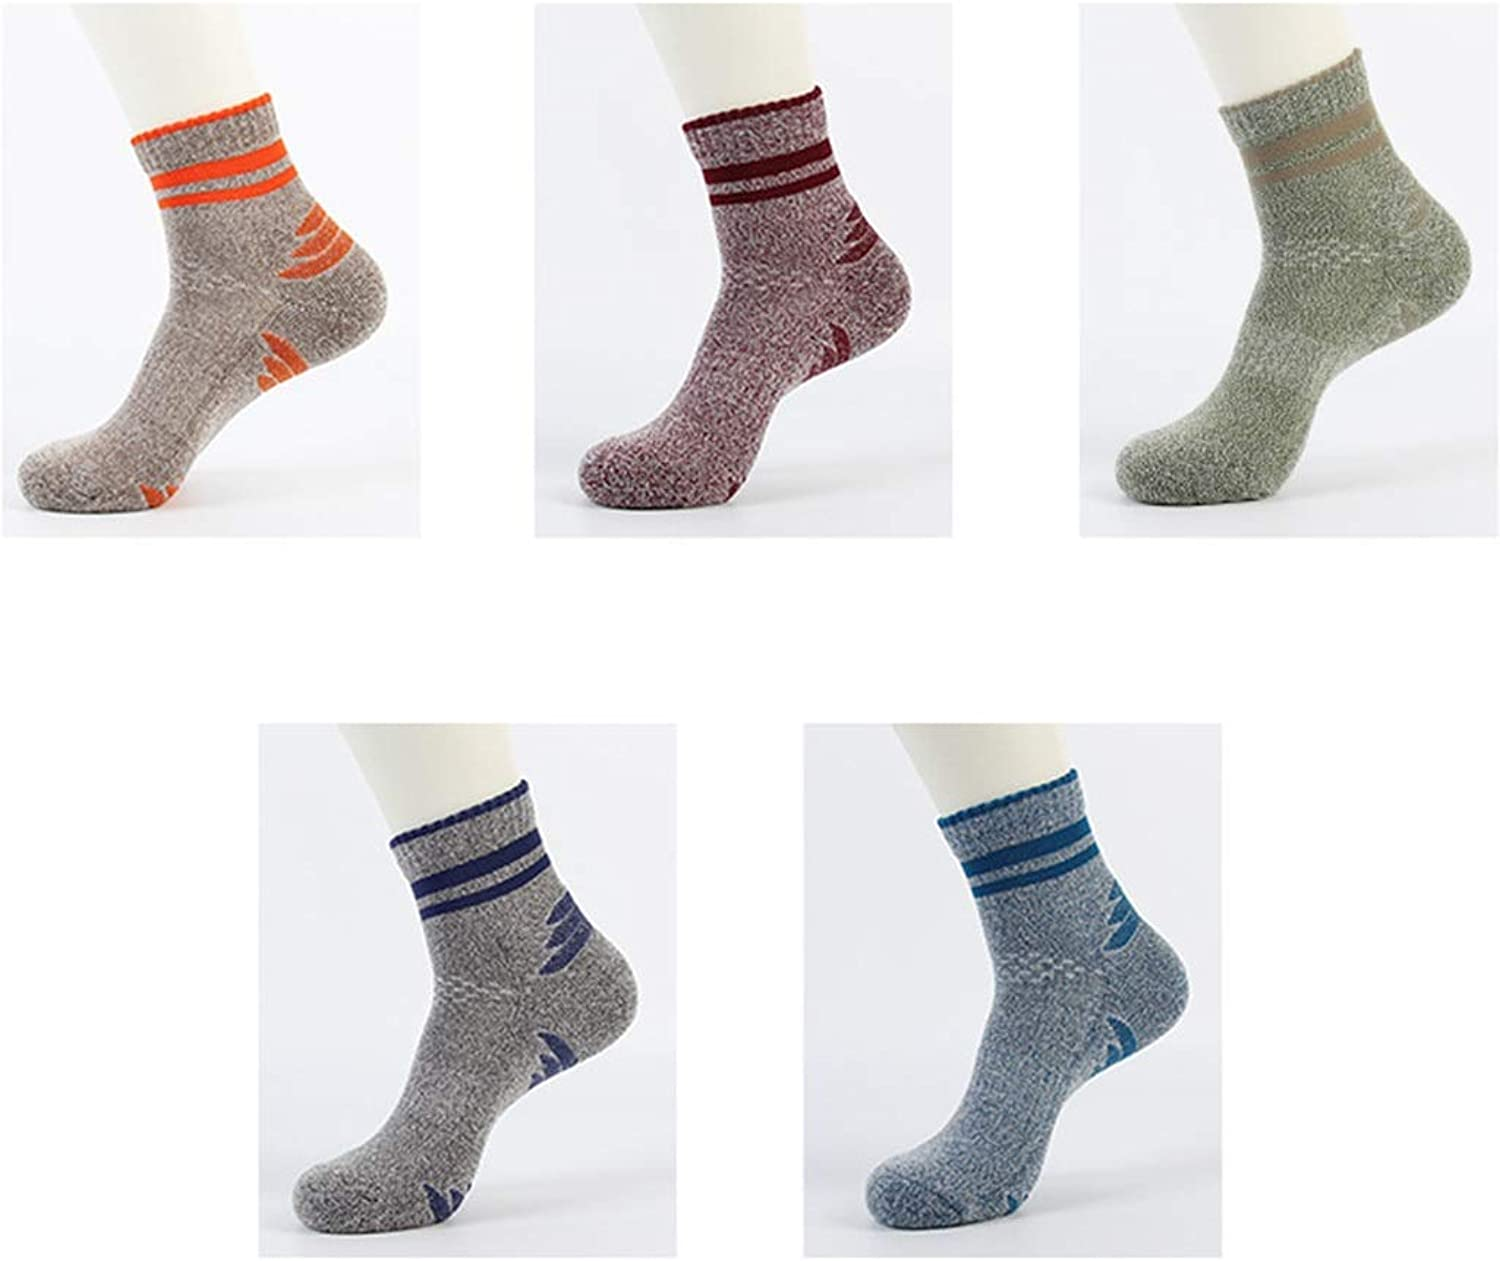 Socks Men's Outdoor Sports Socks Basketball Football Socks Breathable and QuickDrying 5 Pairs